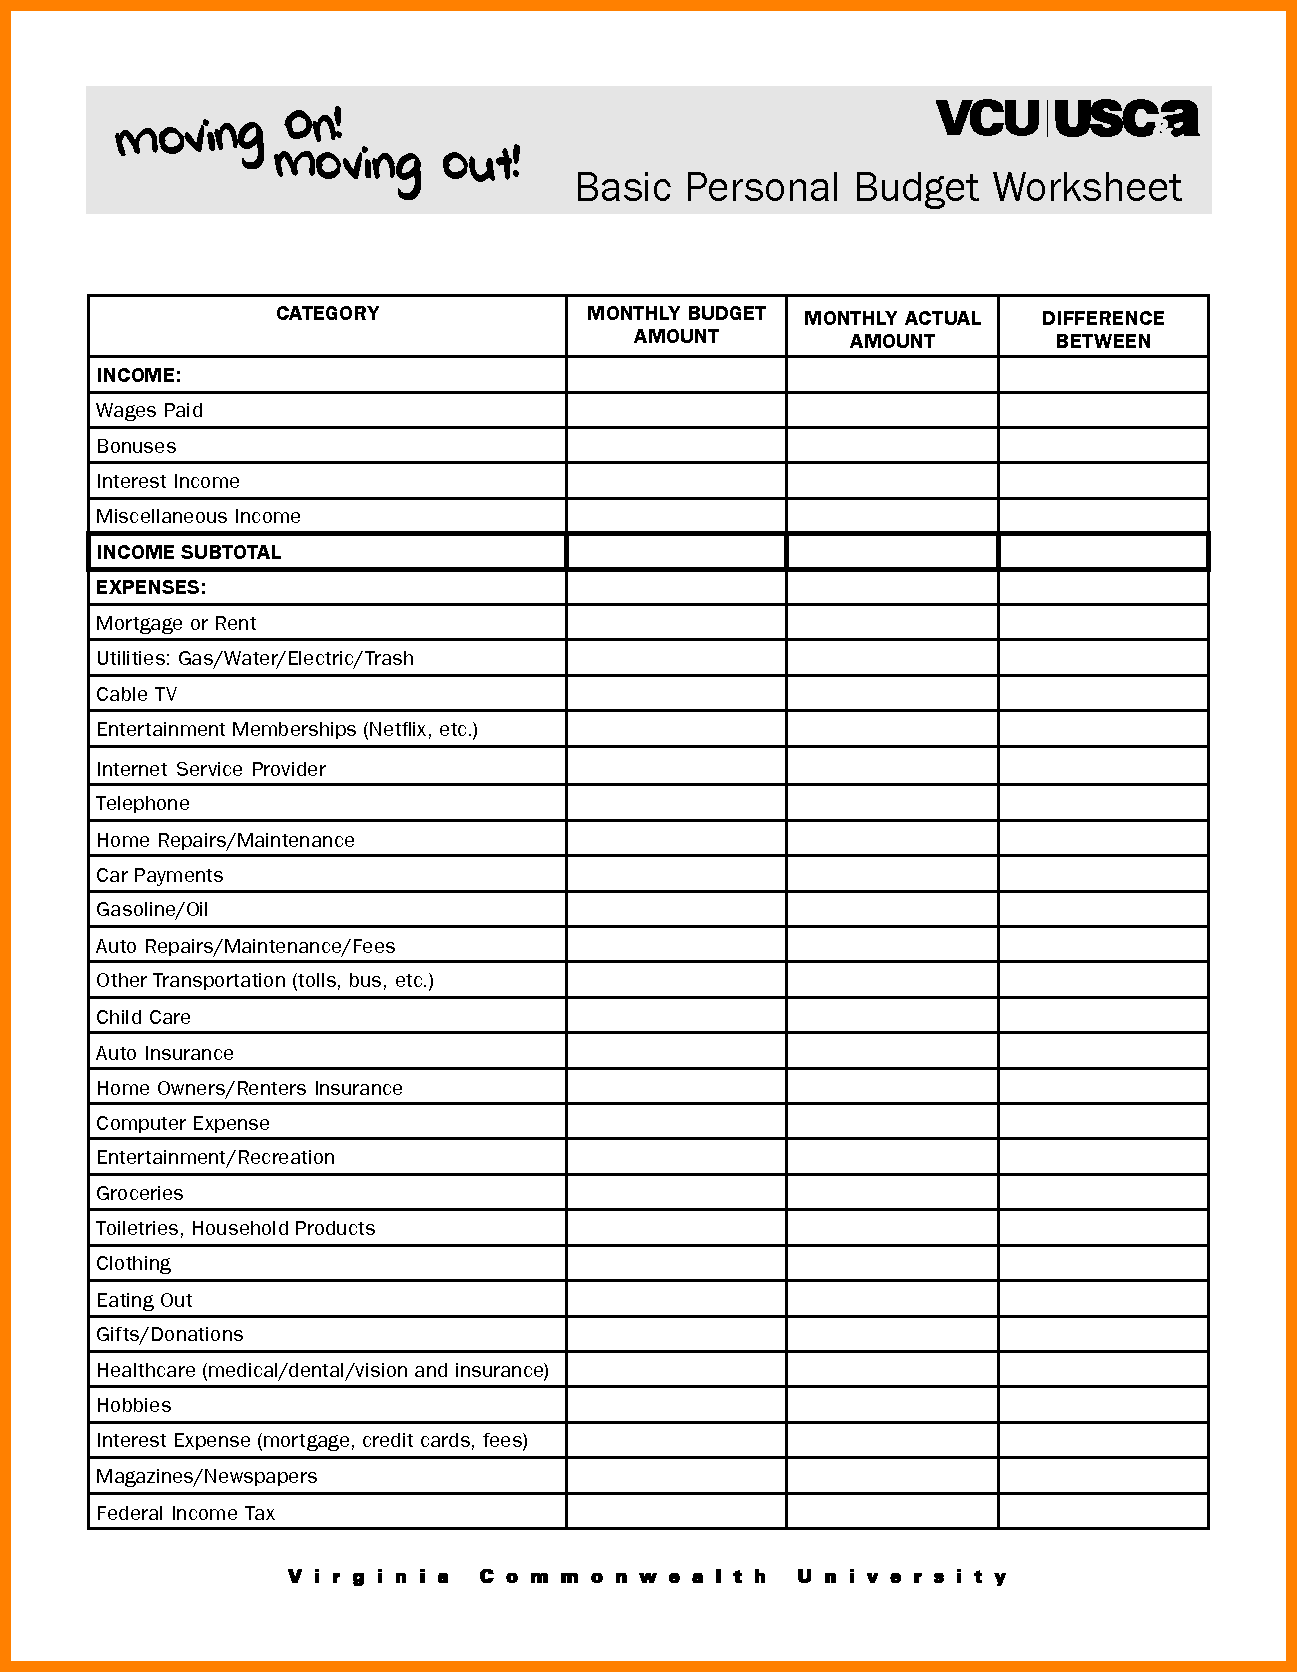 Print Budget Worksheet and Simple Household Bud Worksheet Worksheets Reviewrevitol Free